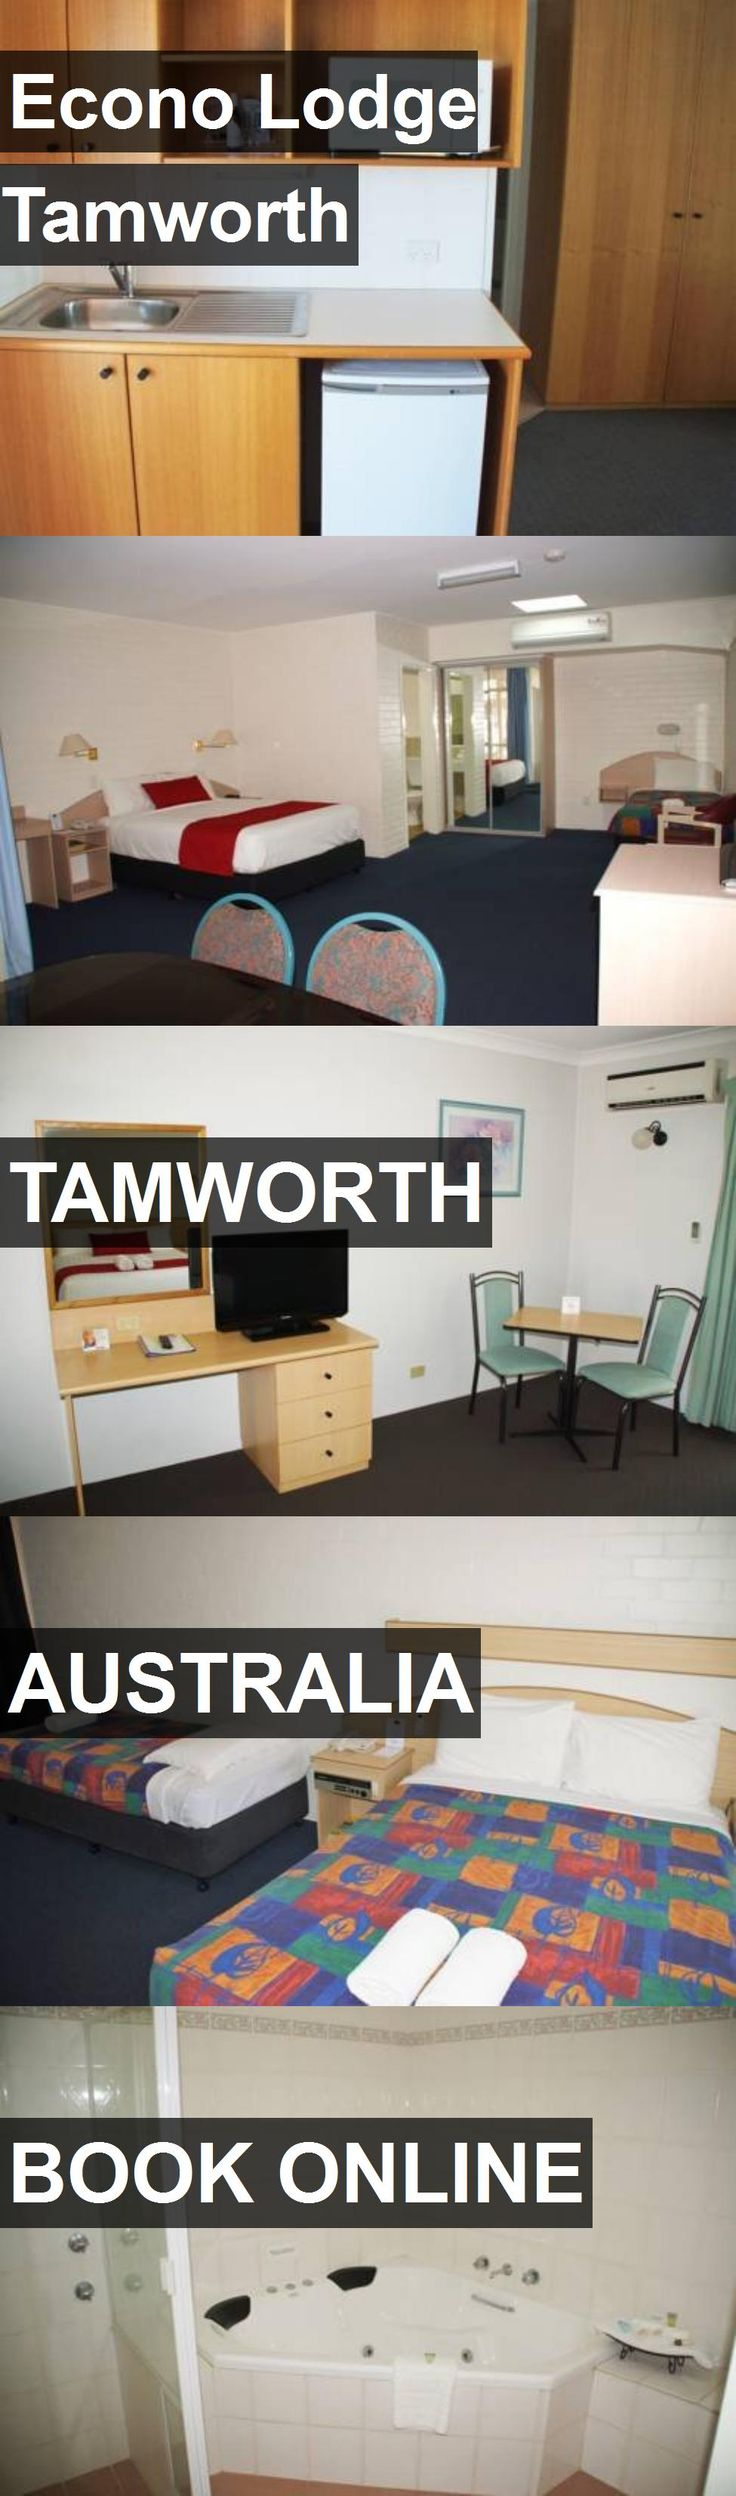 Hotel Econo Lodge Tamworth in Tamworth, Australia. For more information, photos, reviews and best prices please follow the link. #Australia #Tamworth #EconoLodgeTamworth #hotel #travel #vacation